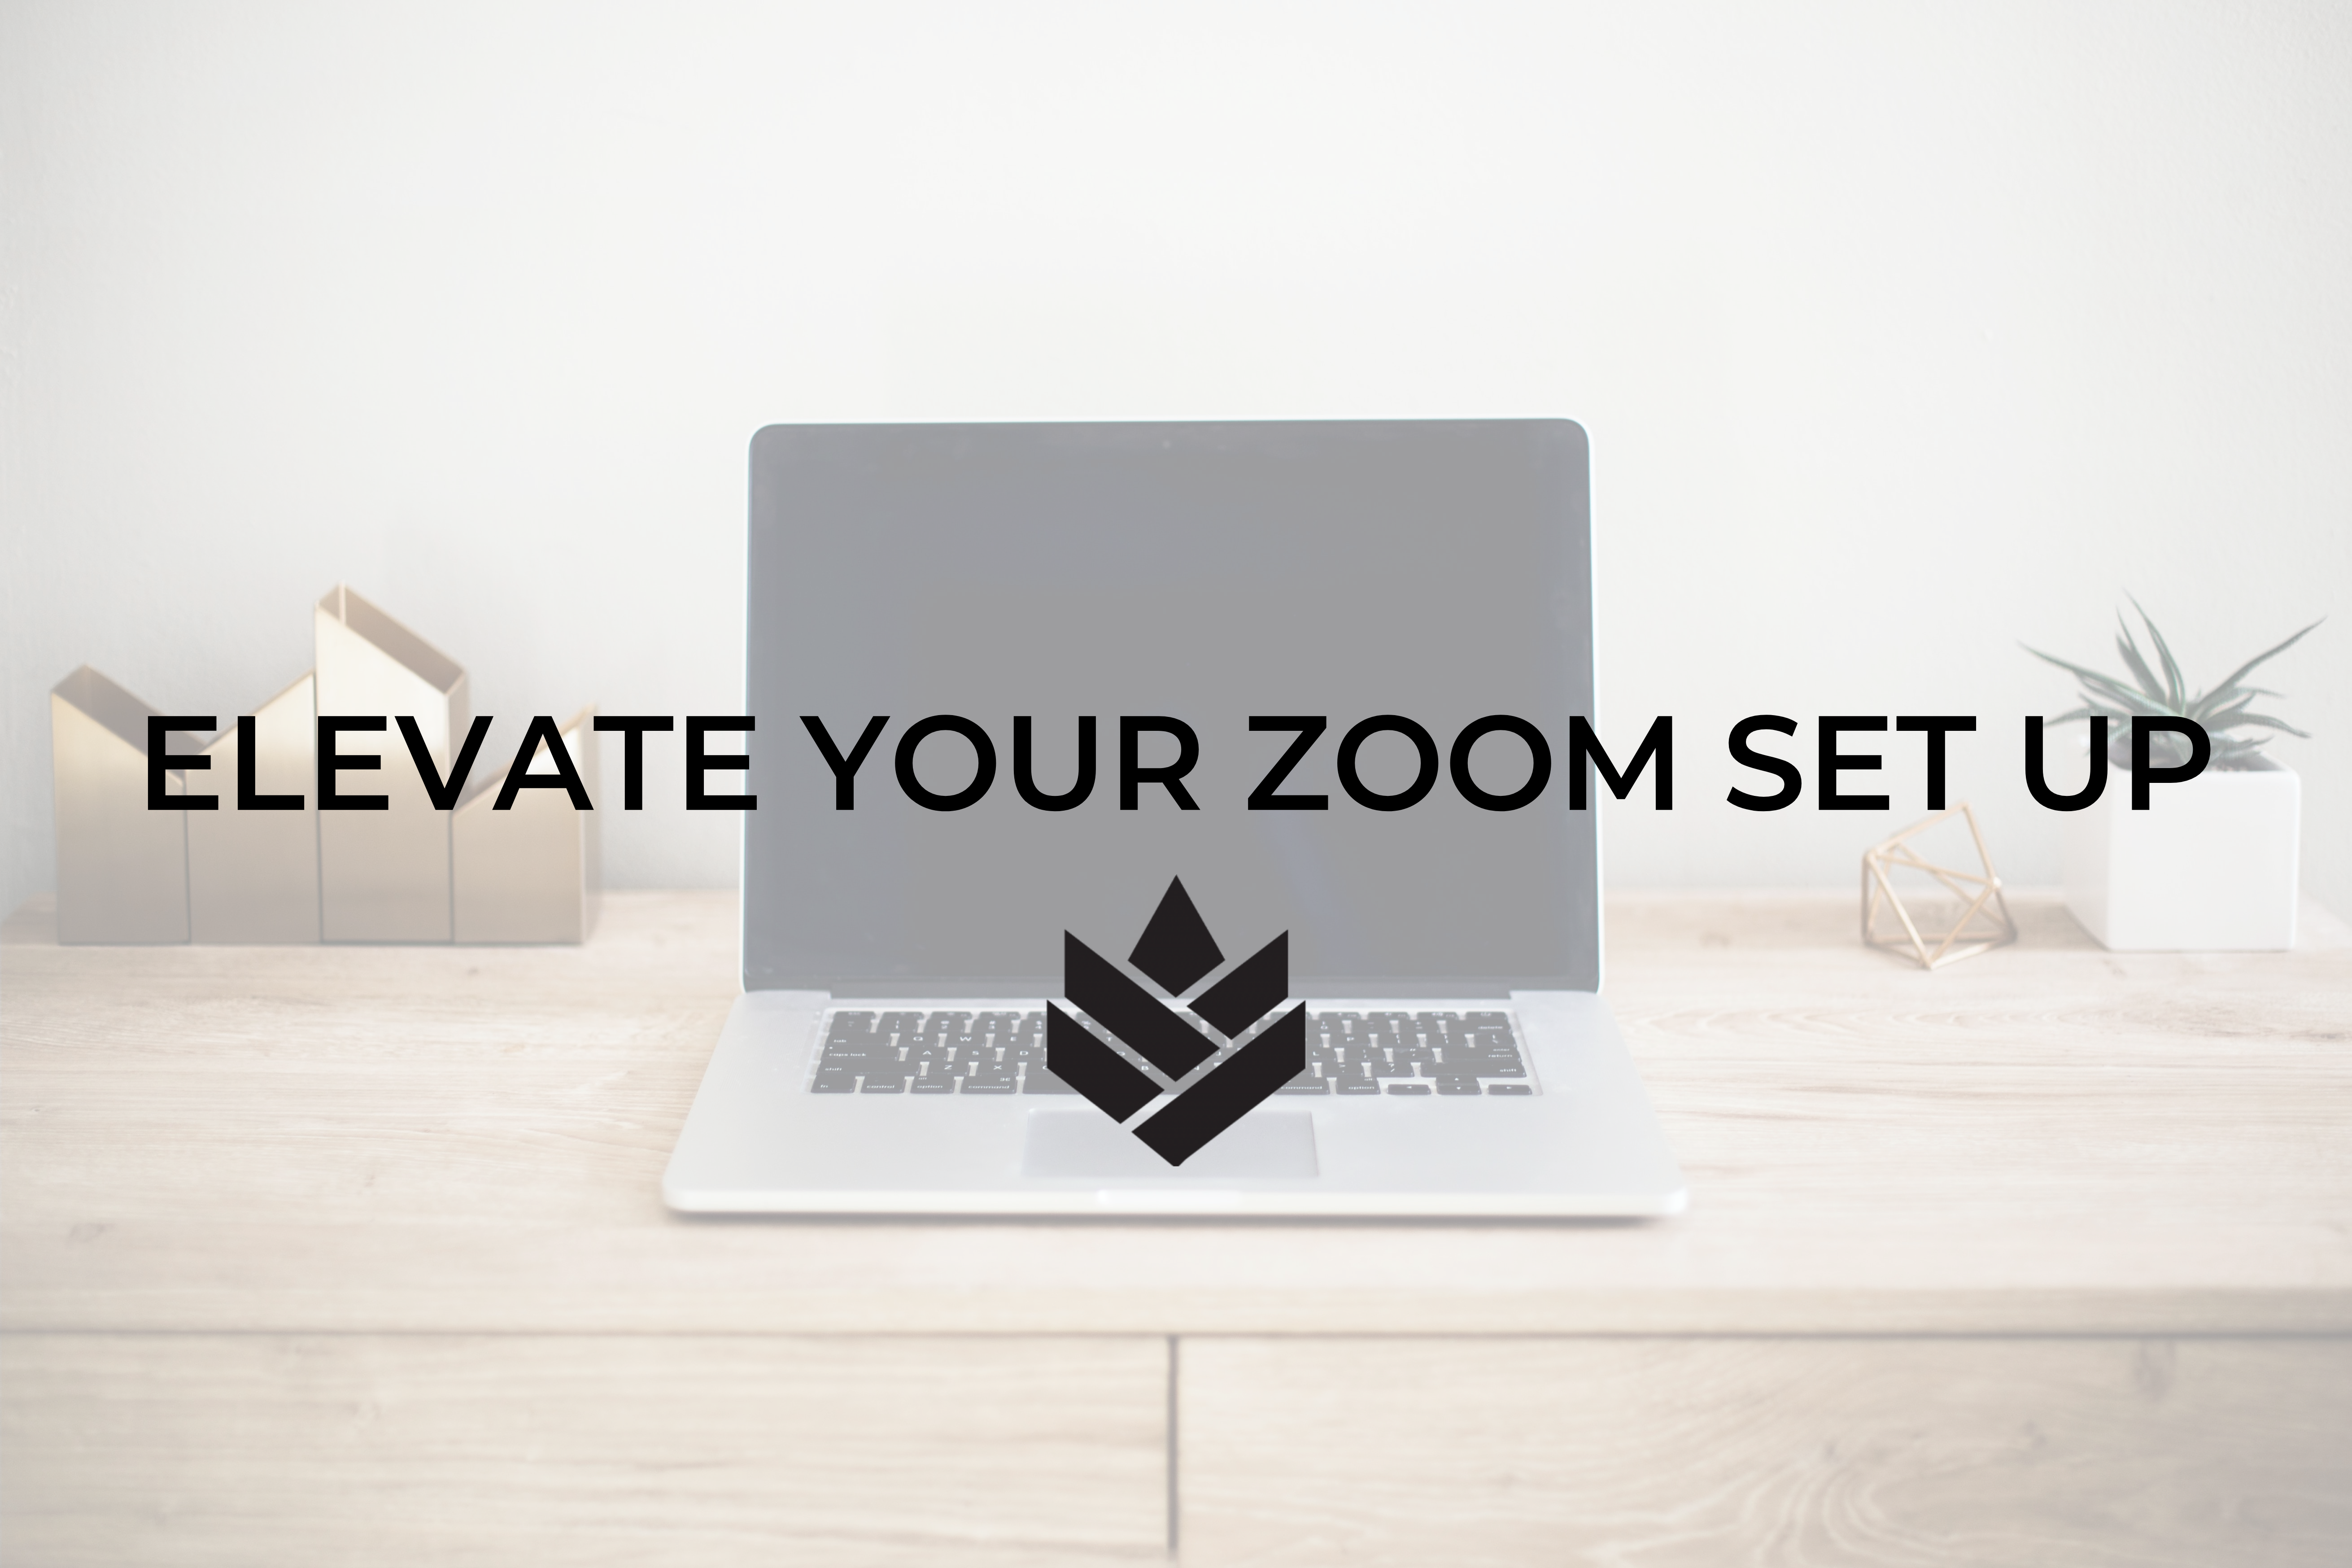 Elevate Your Zoom Set Up